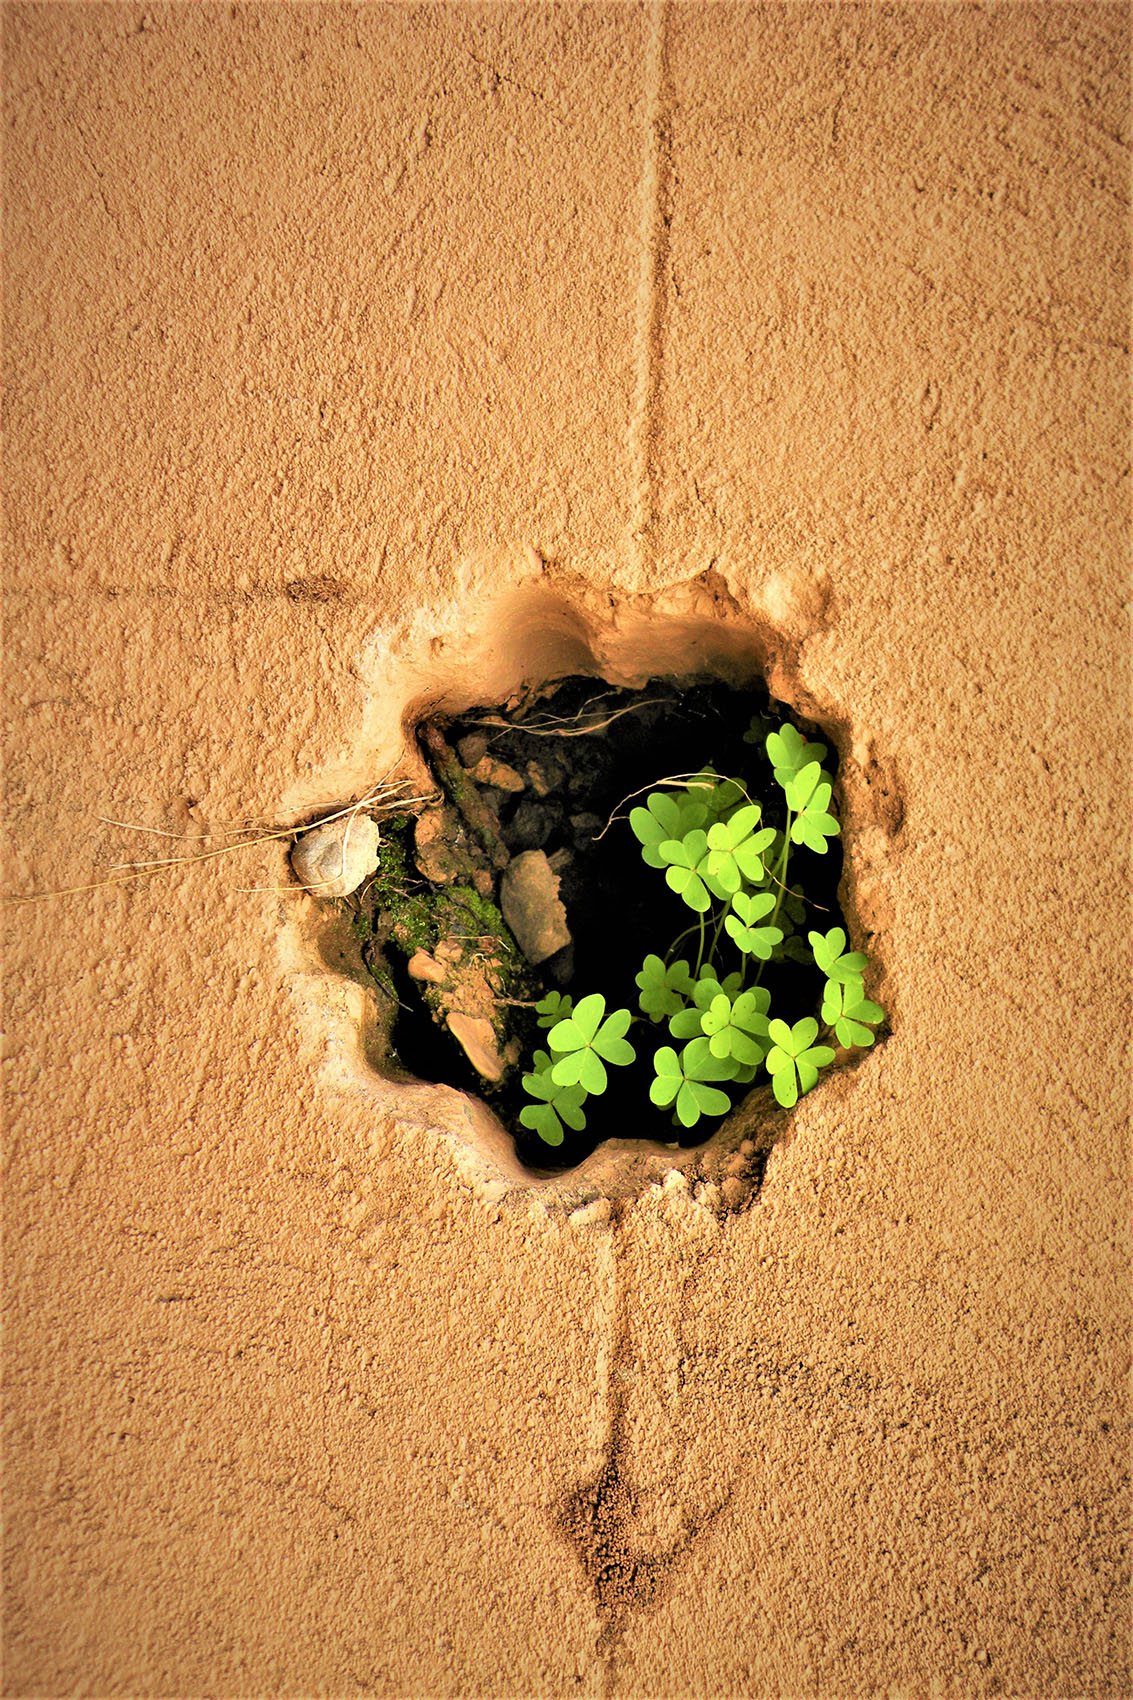 photo of plant growing in crack - Taking Root by Anjela Villarreal Ratliff